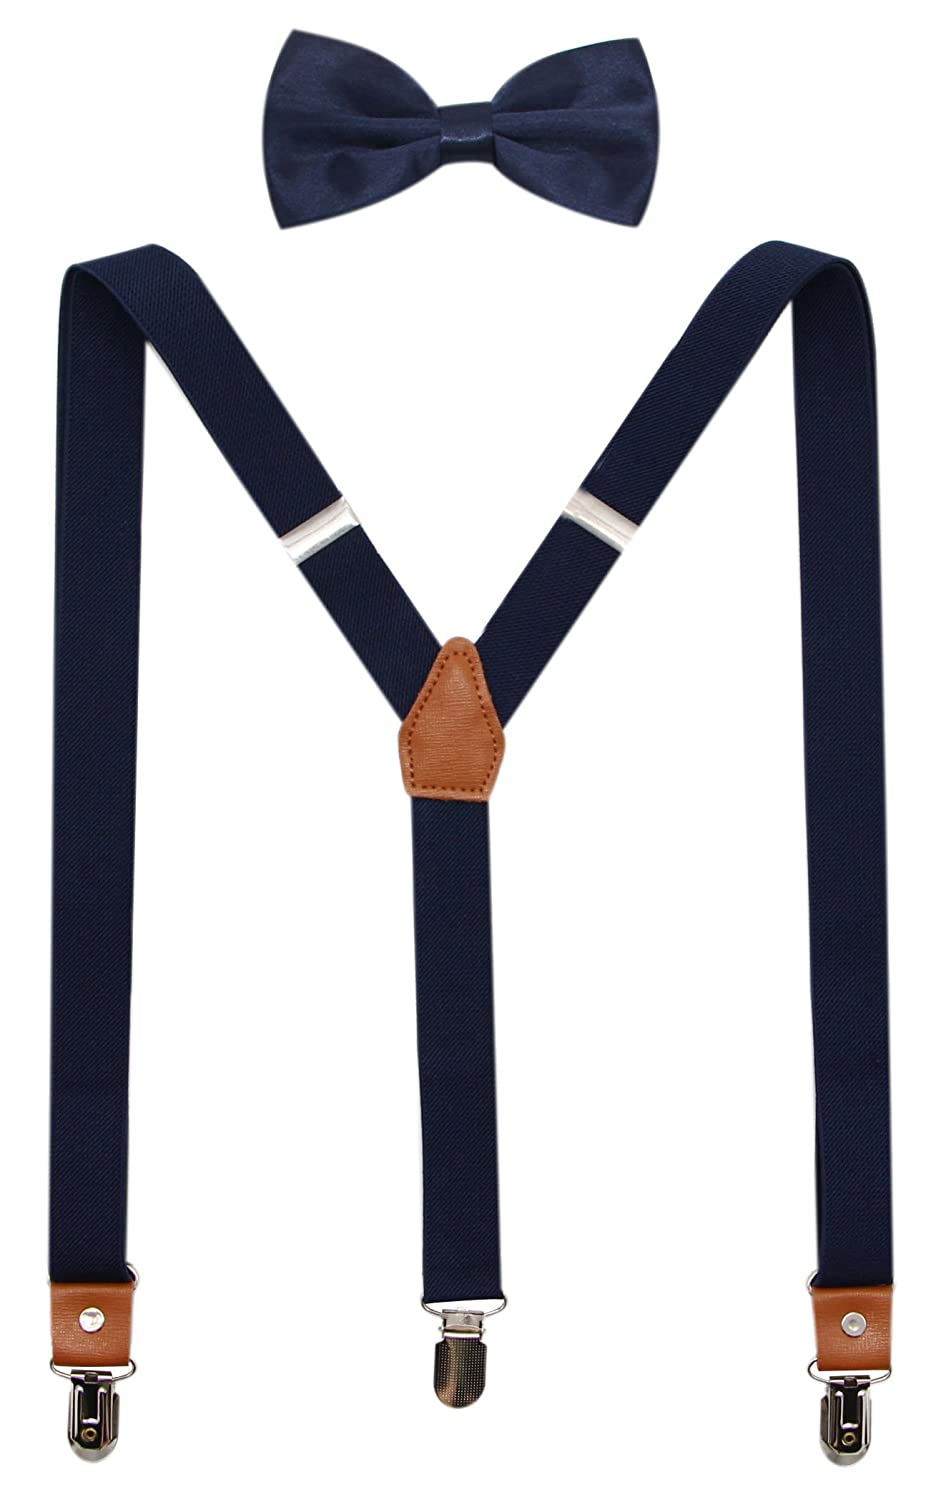 0aa2e1fb774a FOR EVERY LITTLE OR GROWN GENTLEMAN: This suspenders and bowtie set for  boys and men is the great choice for every outfit and occasion.